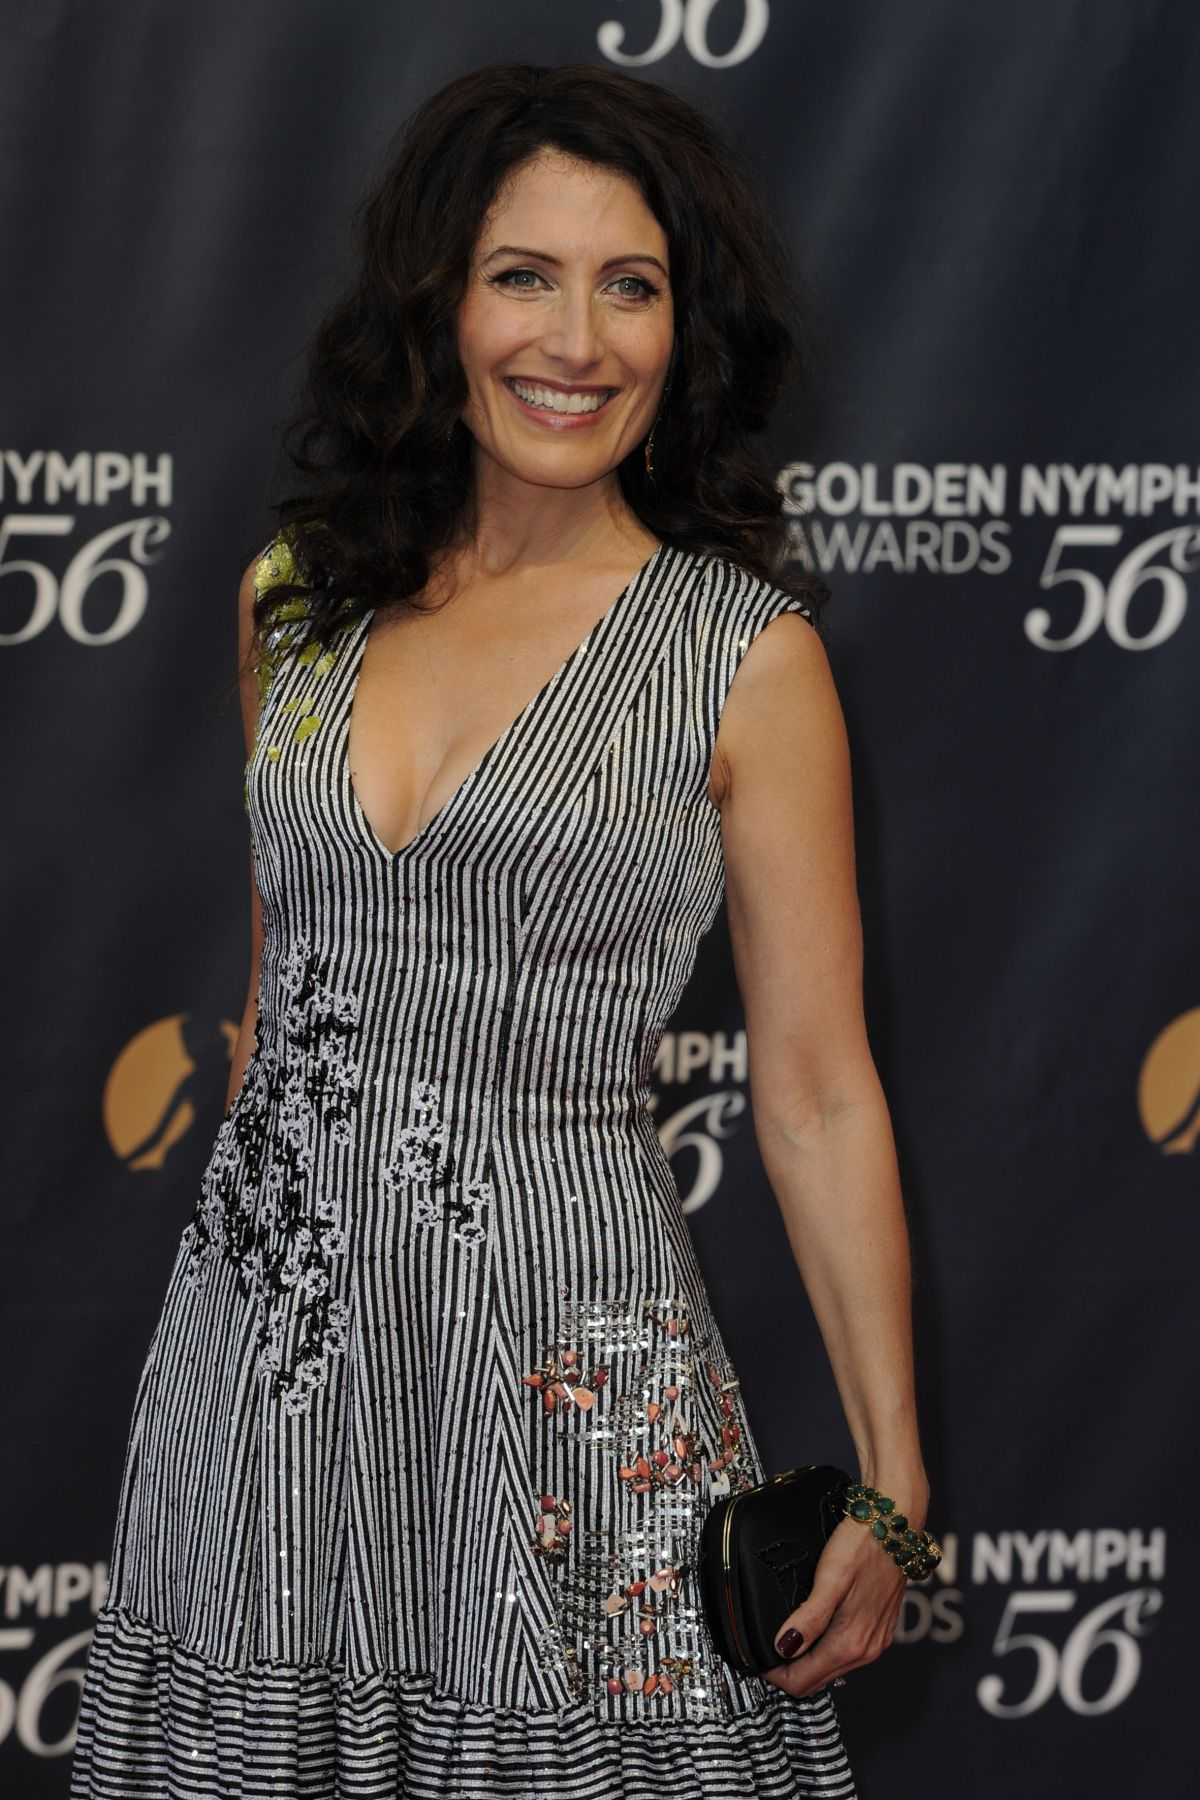 LISA EDELSTEIN at 56th Monte-carlo Television Festival Closing Golden Nymph Awards in Monaco 06/16/2016